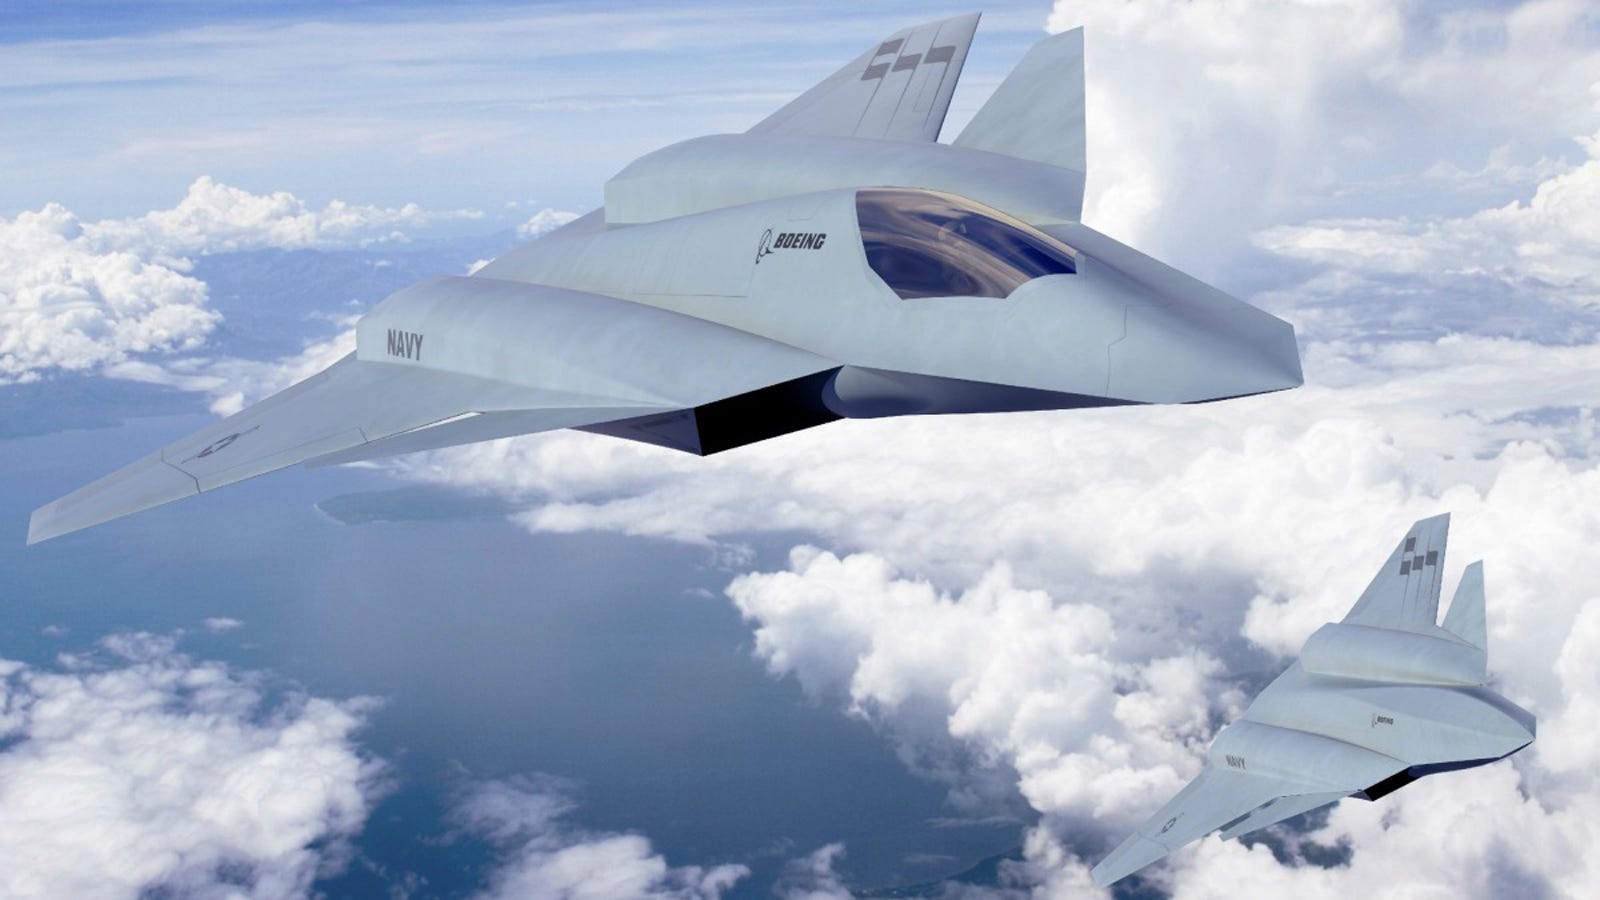 The Navy's Next Gen Fighter Jets Will Heal Themselves